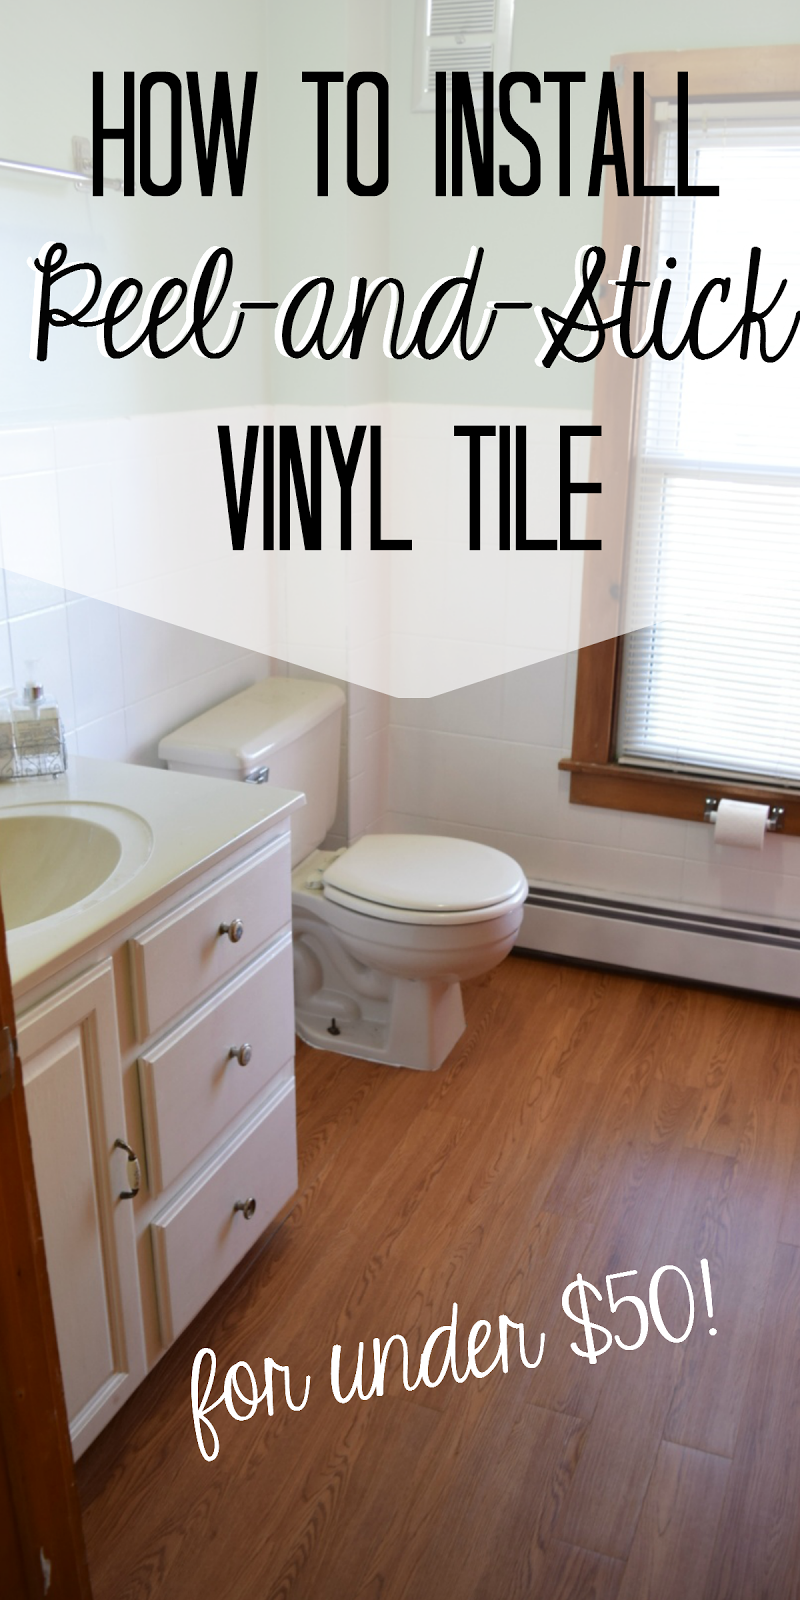 Install Peel-And-Stick Vinyl Floor Planks in the Bathroom ...